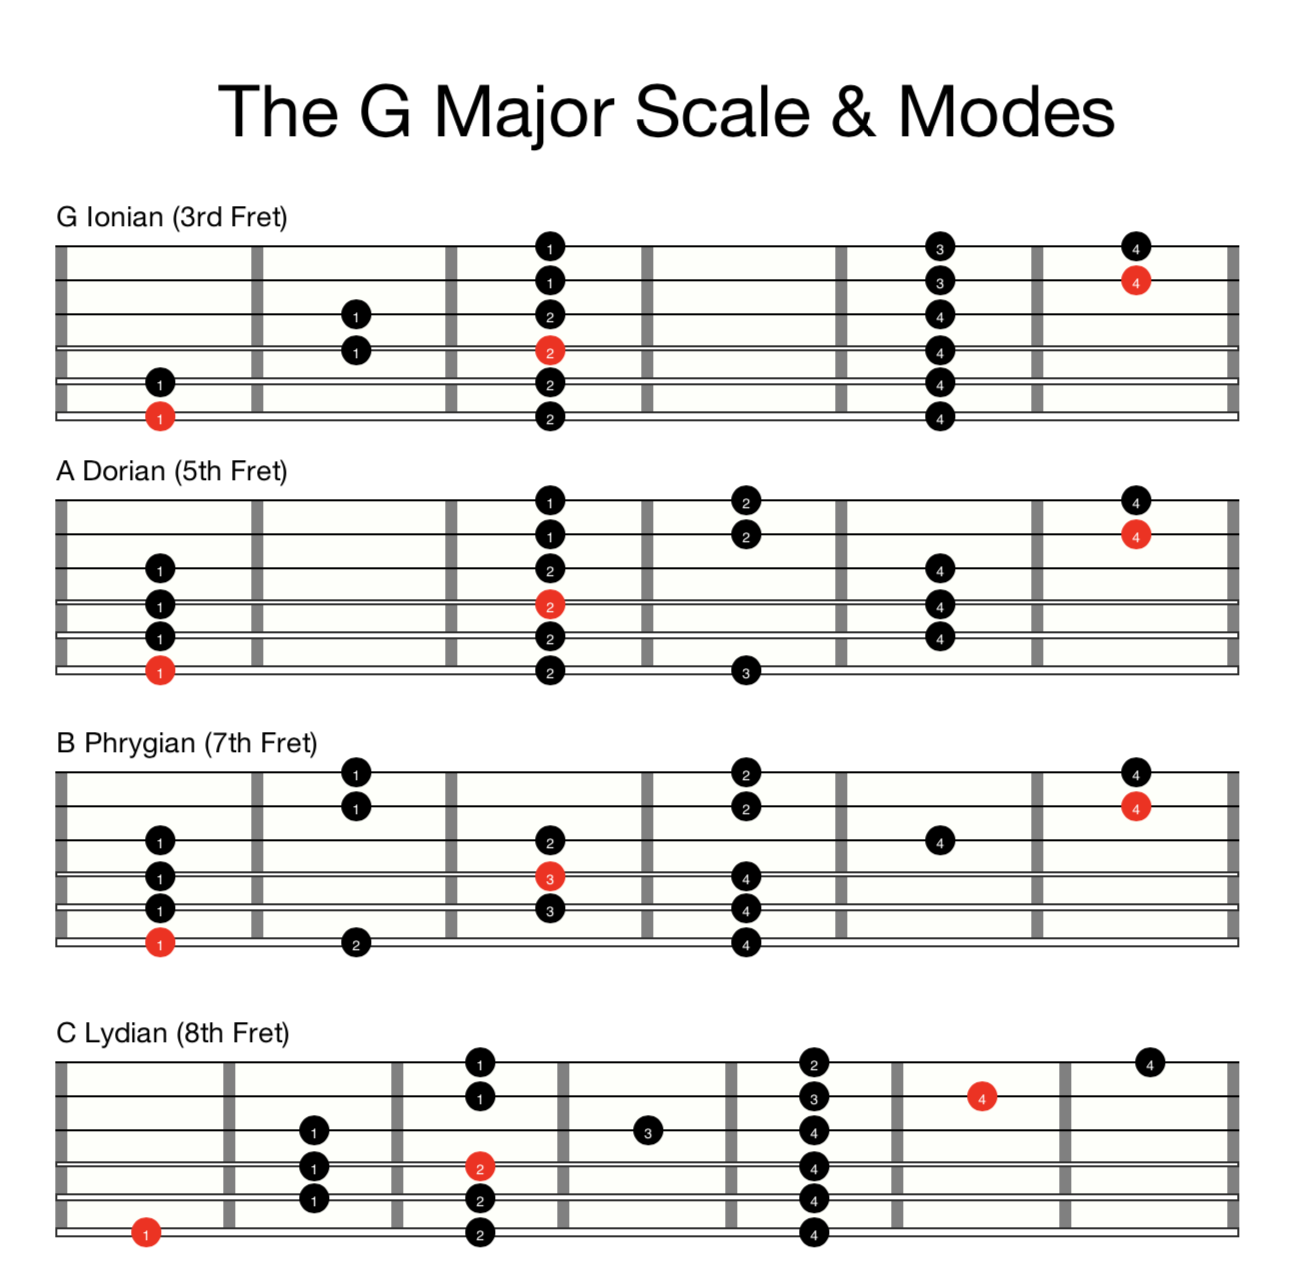 The G Major Scale & Modes